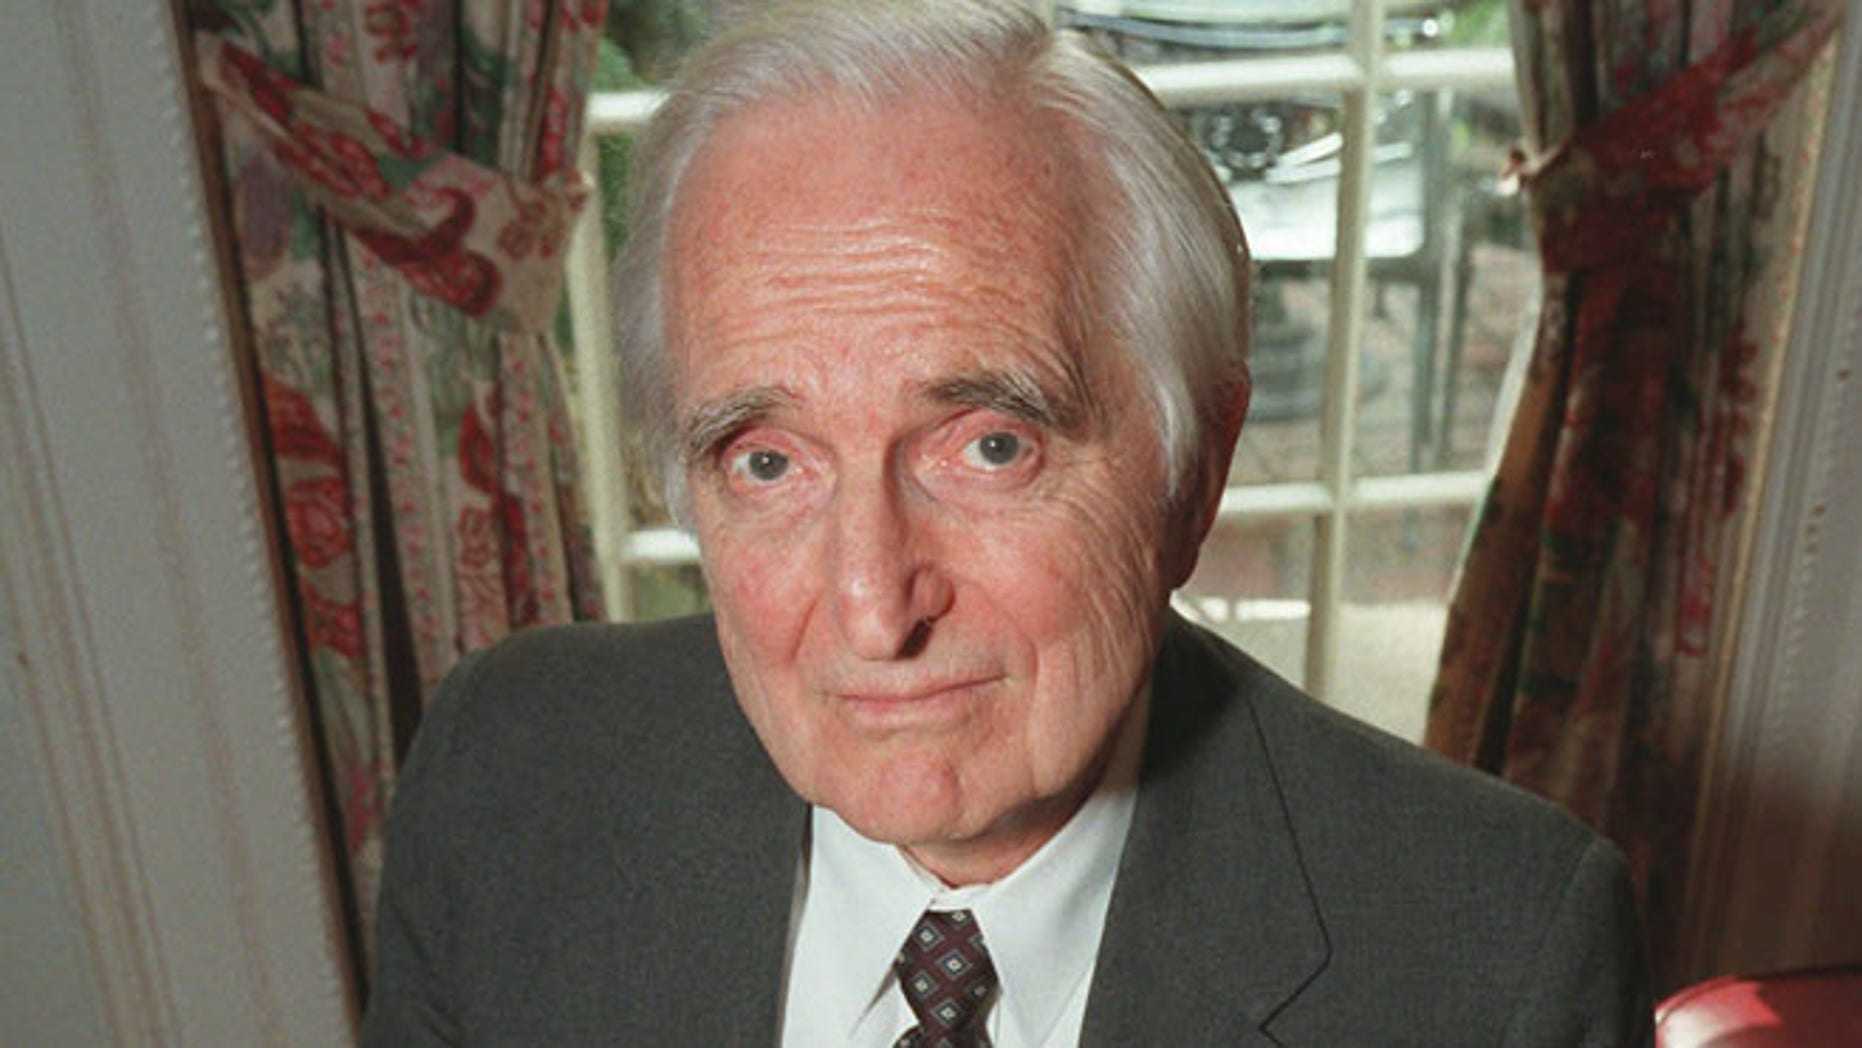 April 9, 1997: In this file photo, Doug Engelbart, inventor of the computer mouse and winner of the half-million dollar 1997 Lemelson-MIT prize, poses with the computer mouse he designed, in New York.